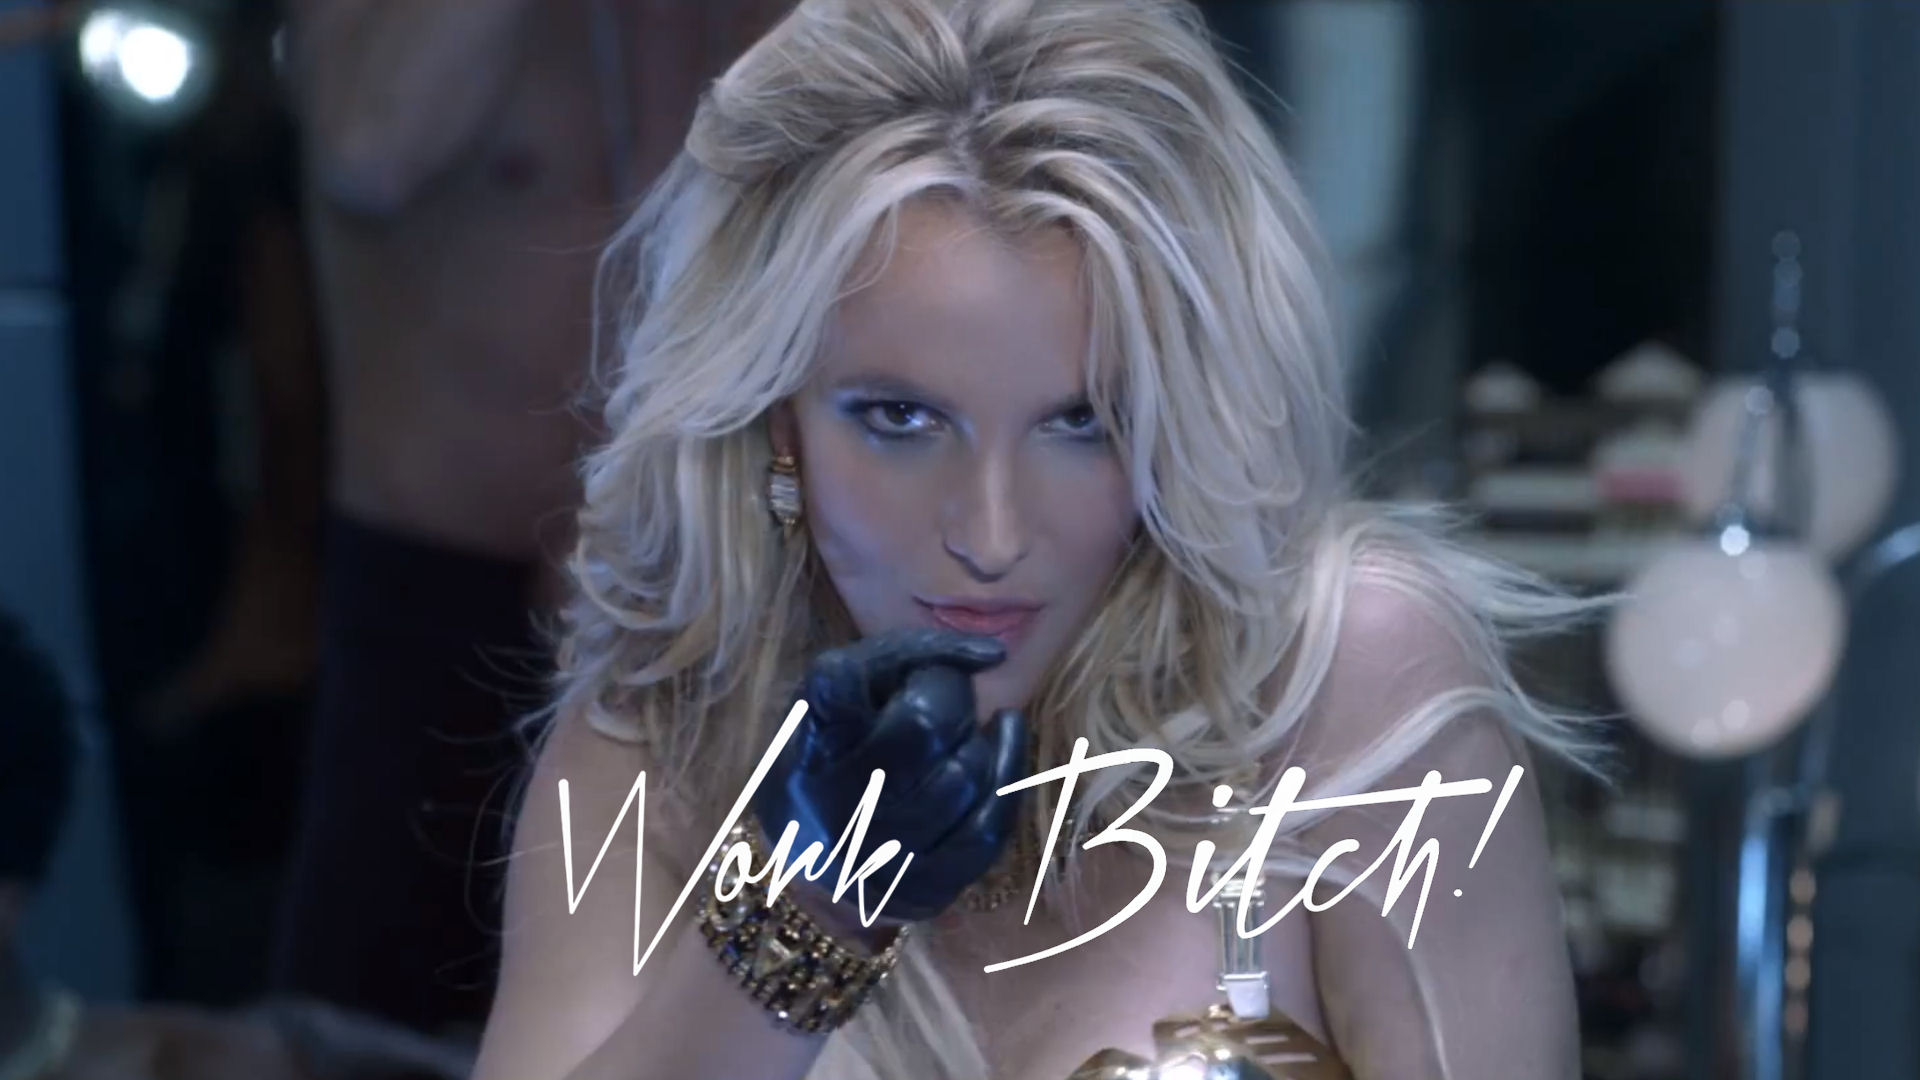 image Britney spears work bitch sex music video